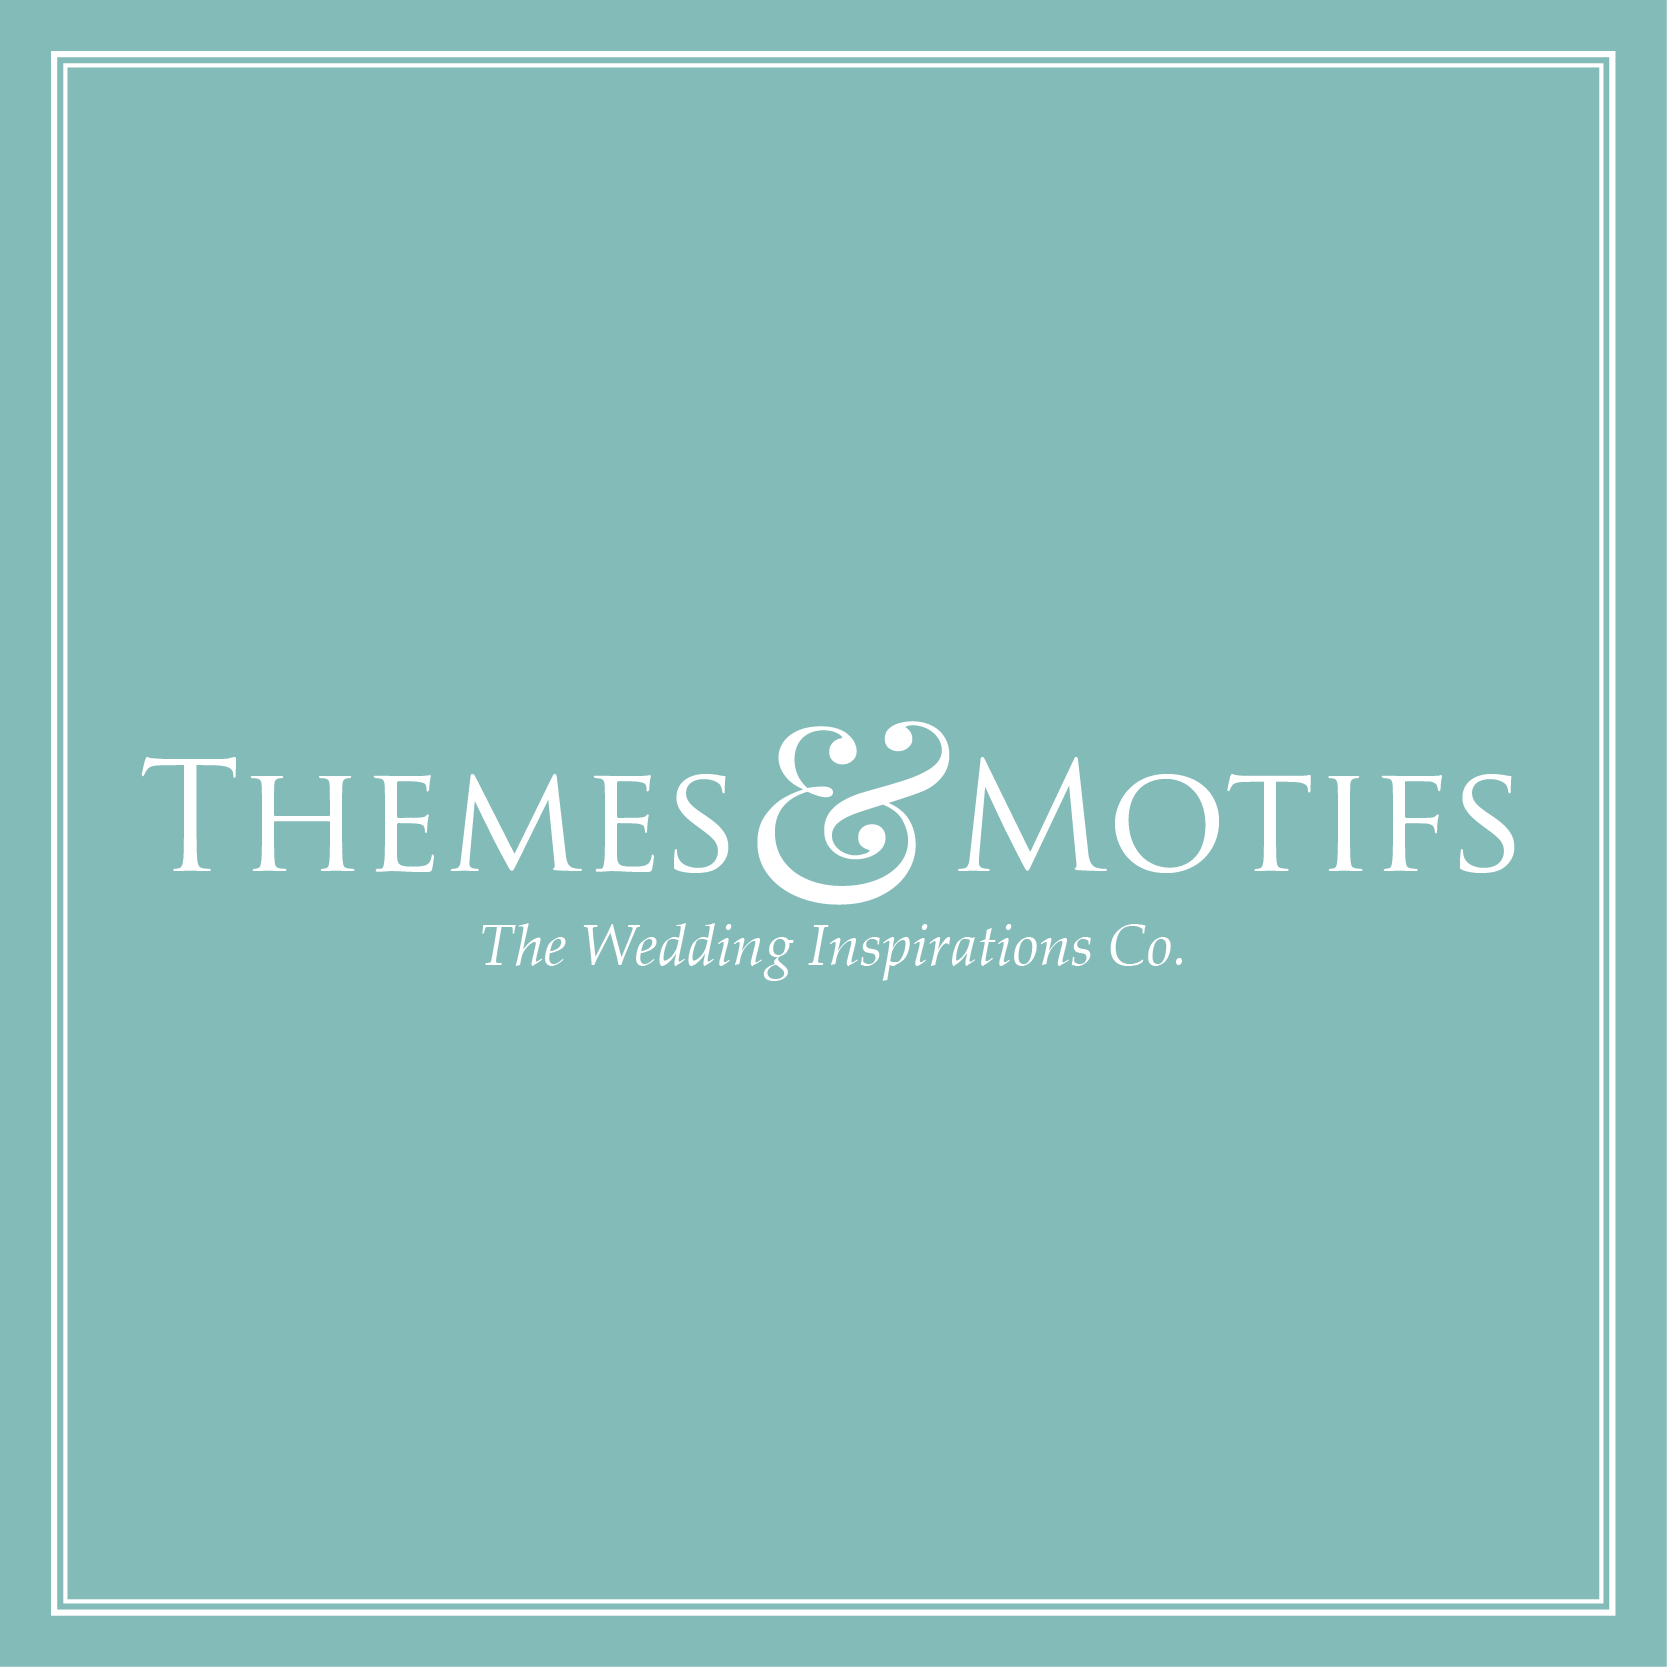 Themes & Motifs The Wedding Inspirations Co.